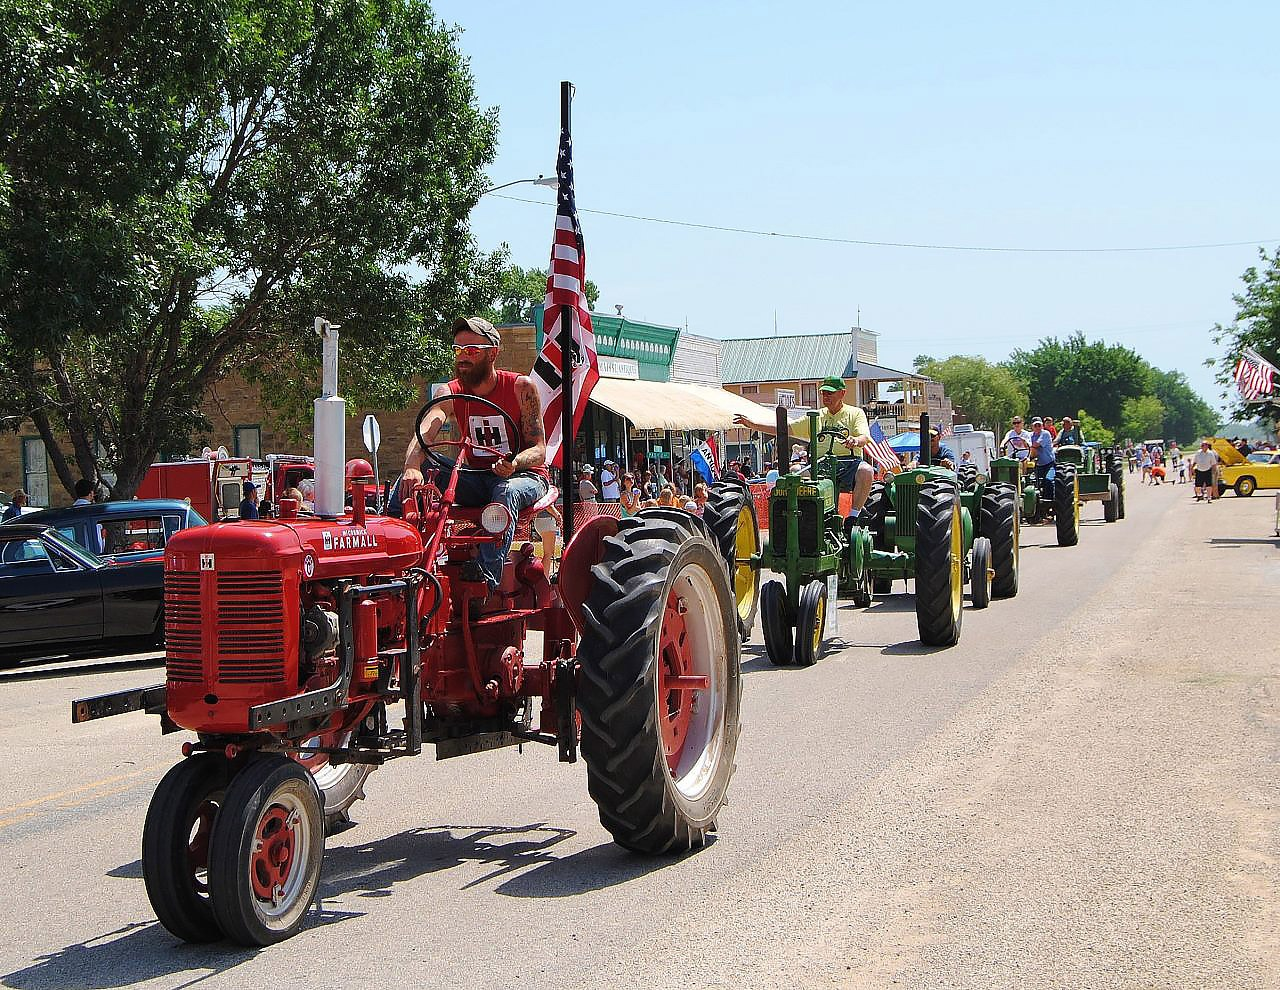 The Paxico Community Vintage Tractor Club will be just one of the many features scheduled for the 10 o'clock parade during the sixth annual Paxico Meatloaf Festival on June 28. Fort Riley's Big Red One First Division will be participating in the parade with their band, color guard, and the 541st Combat Sustainment Support Battalion equipment including several vehicles, and field mess tent, to even have a meatloaf prep demonstration, and an entry in the meatloaf cook-off contest.